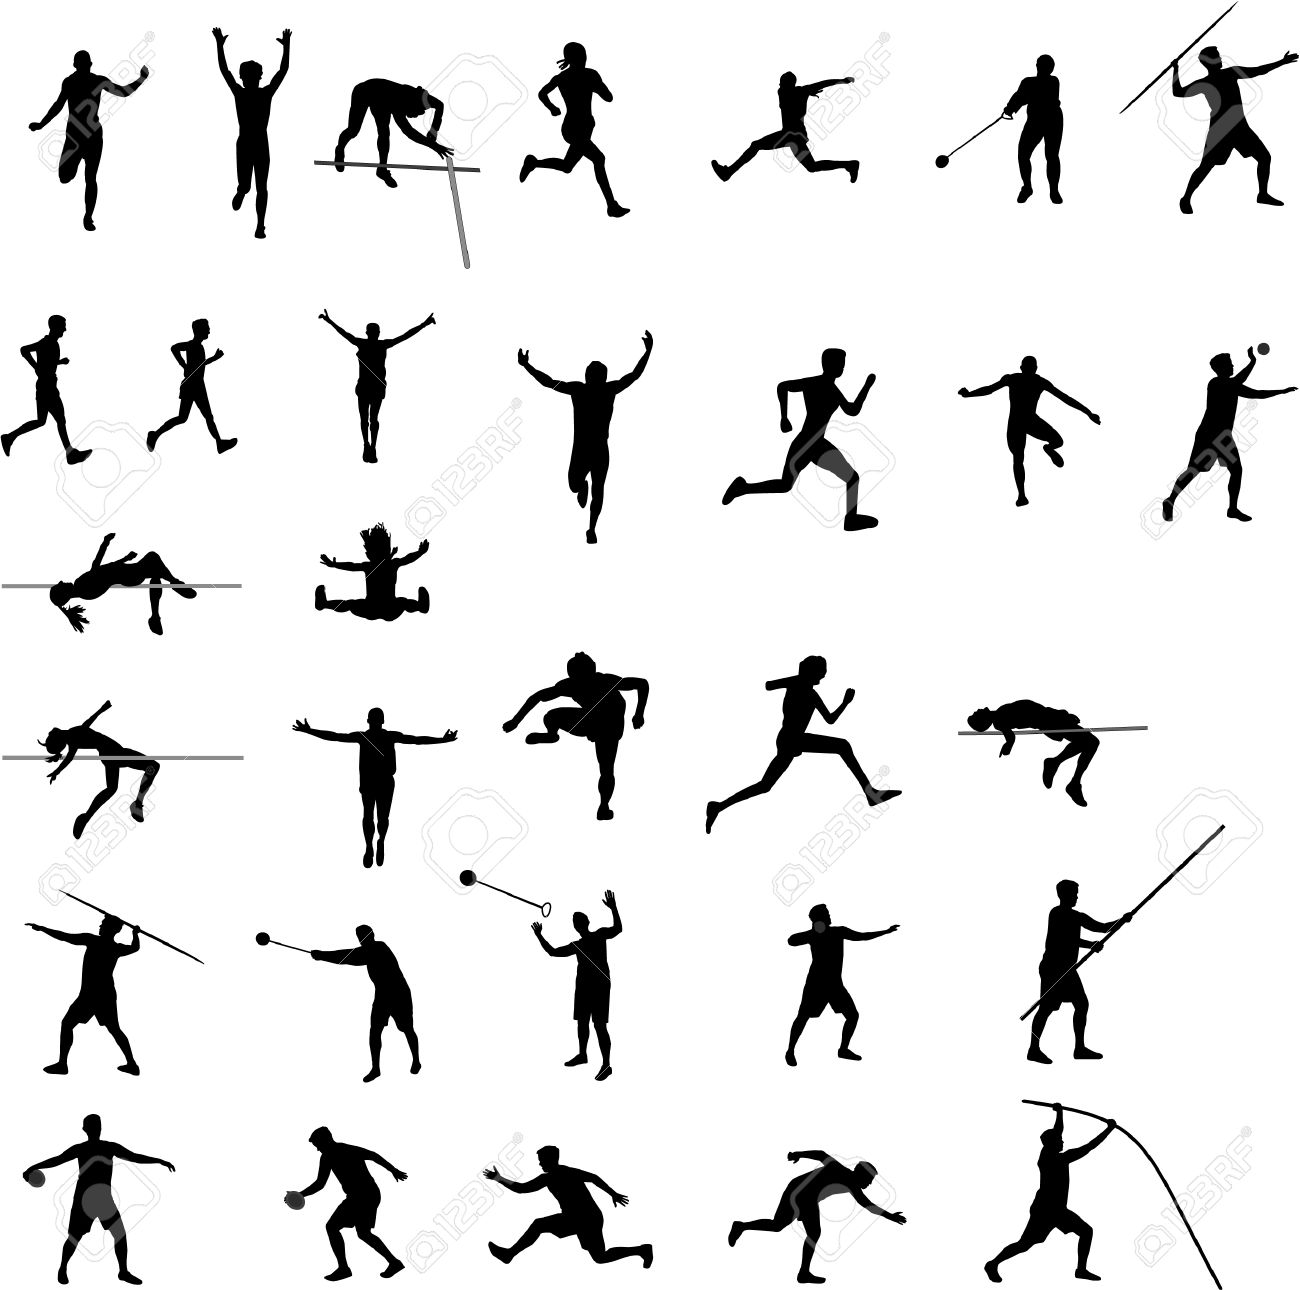 athletic silhouettes.